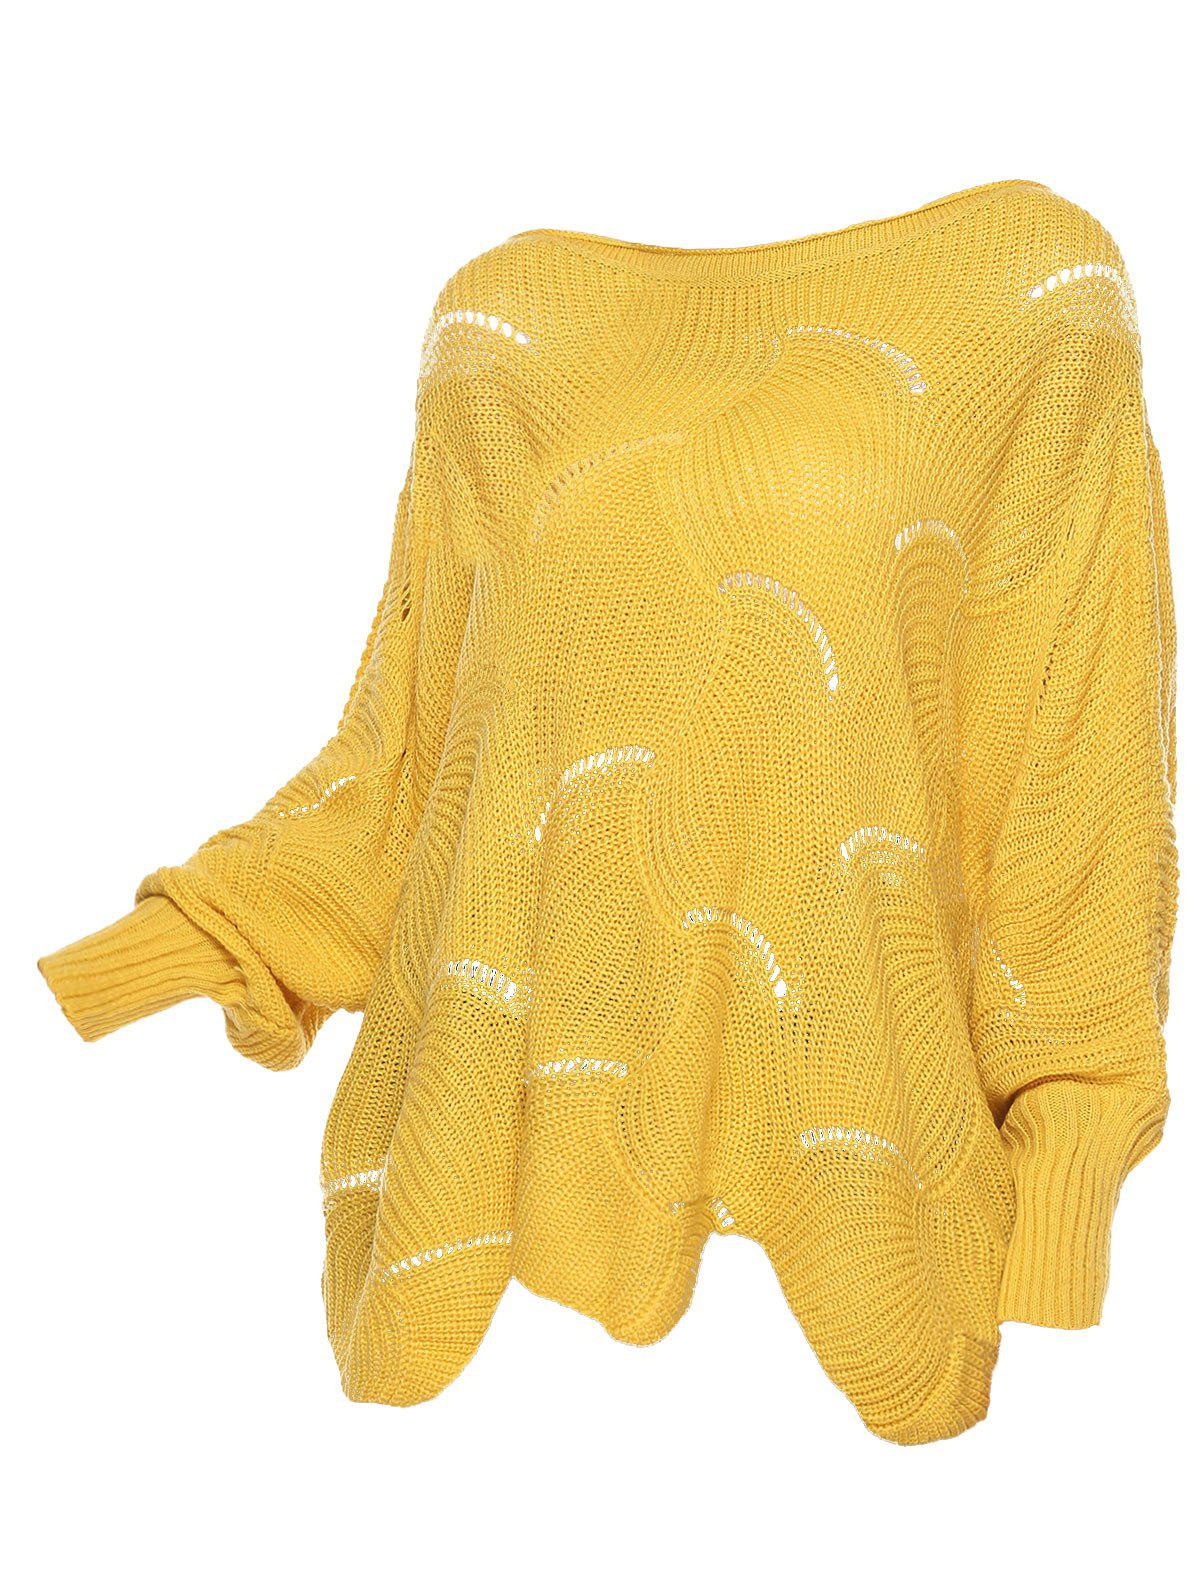 Pointelle Knit Scalloped Hem Pullover Plus Size Sweater - YELLOW M